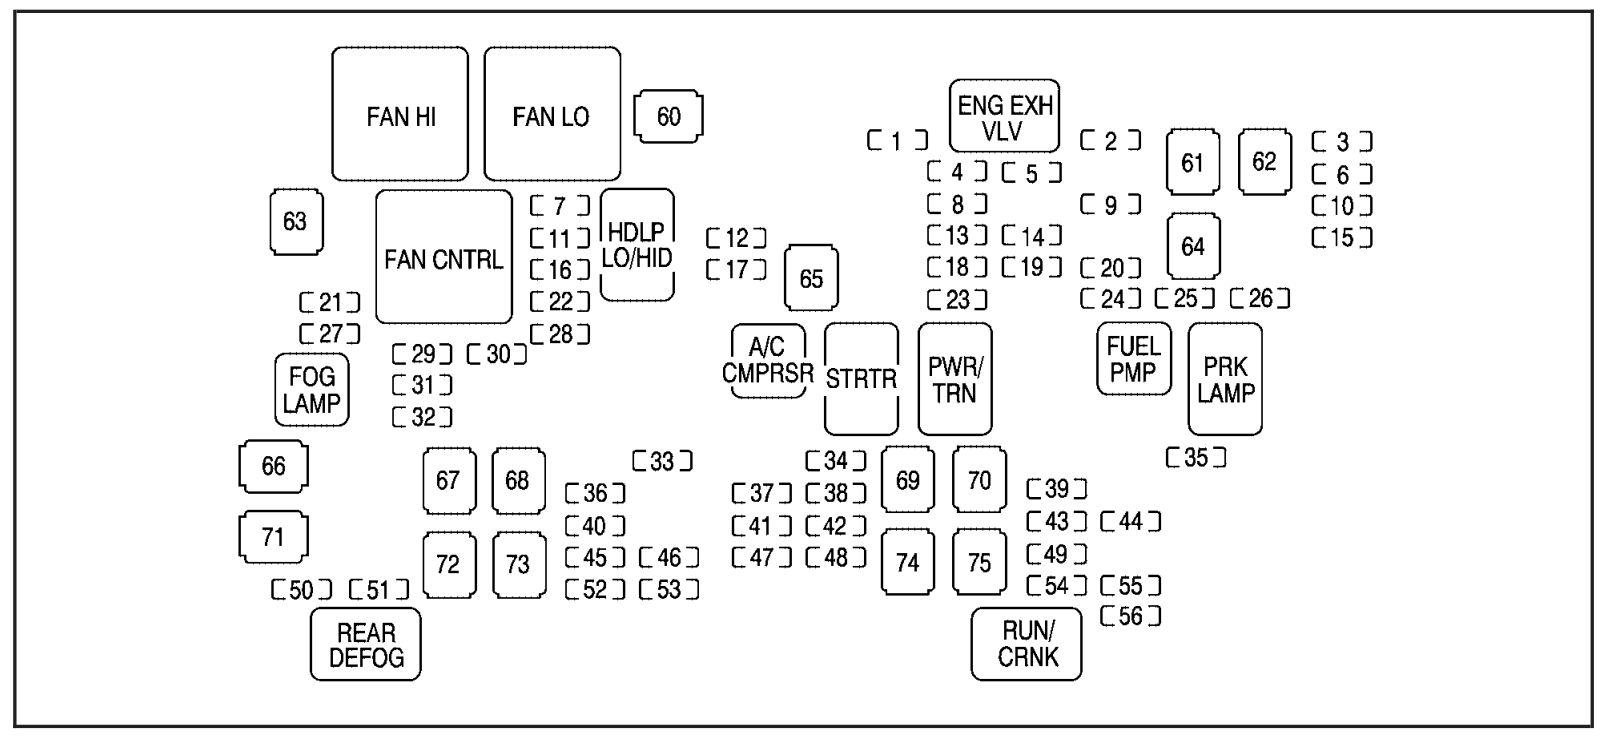 chevrolet avalanche - fuse box diagram - engine compartment